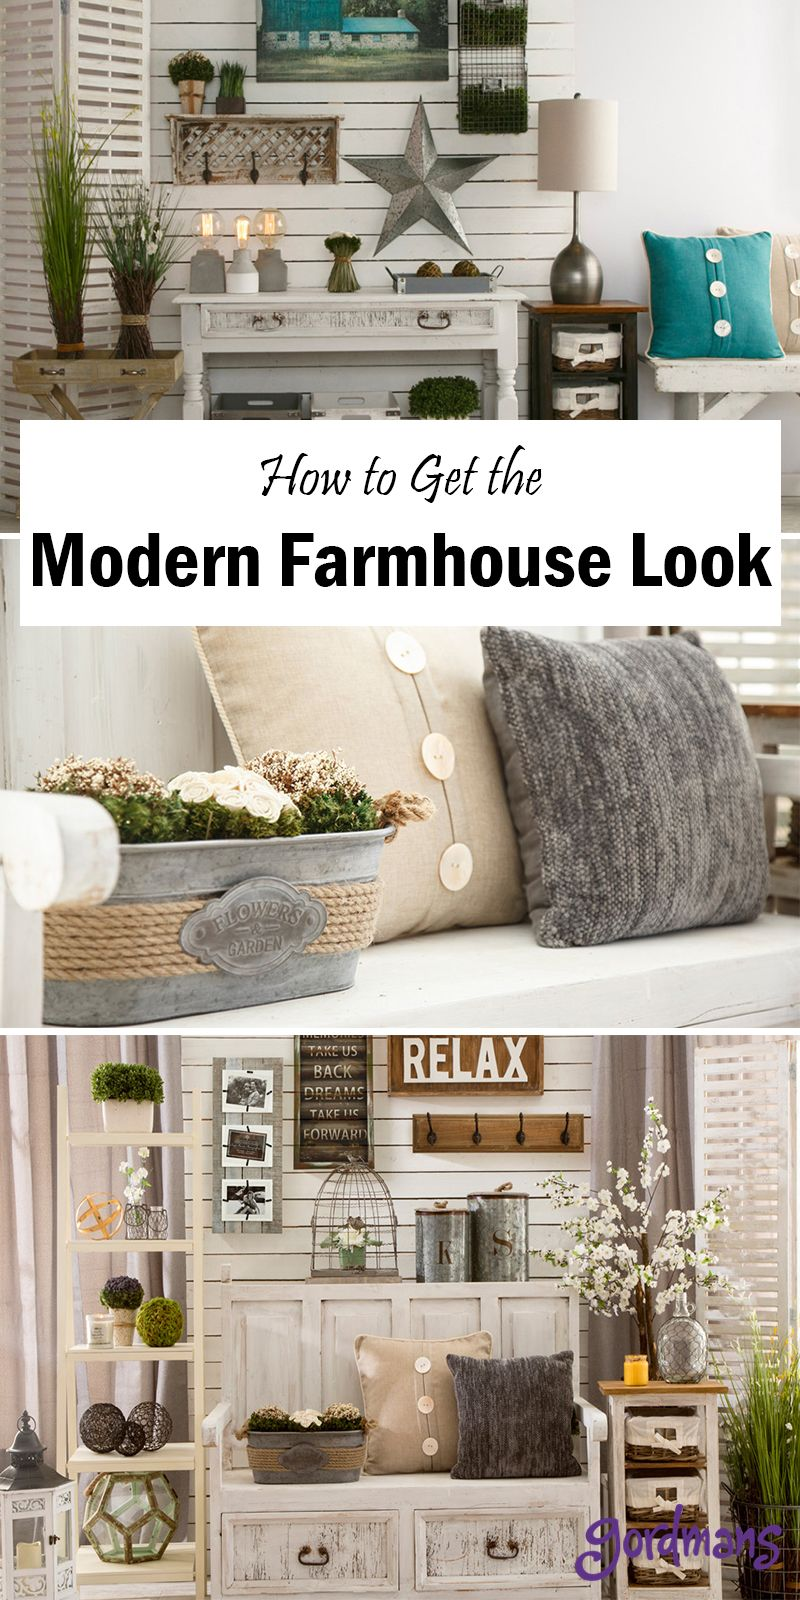 Modern Farmhouse Décor Tips & Ideas in 2018 | Home Style | Pinterest ...